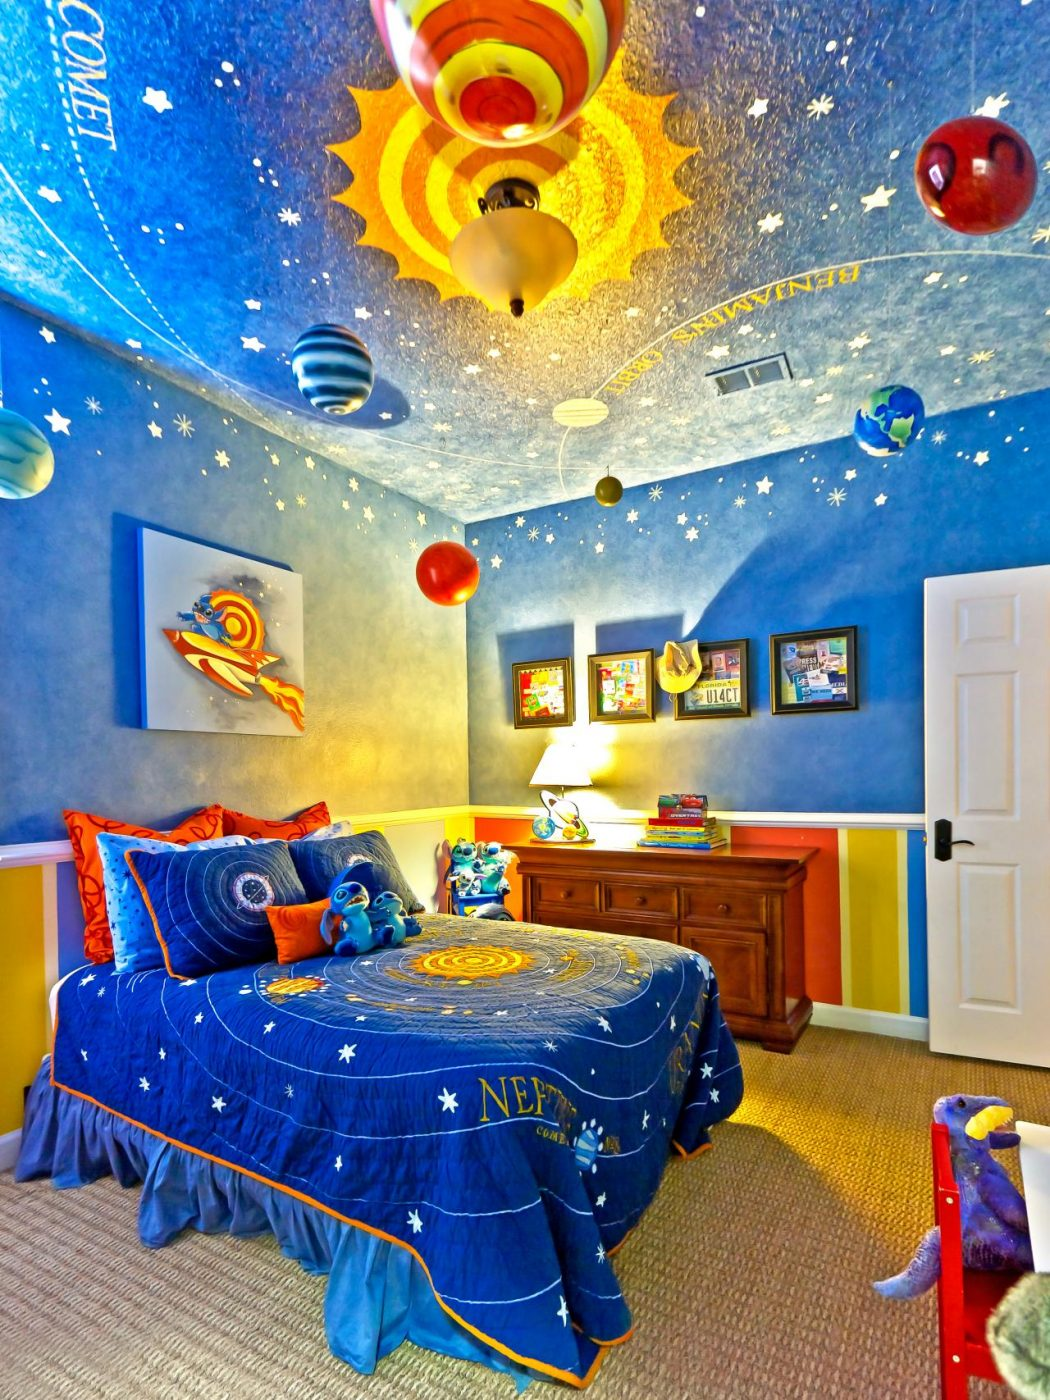 Original_Glenda-Hobus-Space-Themed-Kids-Room_s3x4.jpg.rend_.hgtvcom.1280.1707 +25 Marvelous Kids' Rooms Ceiling Designs Ideas